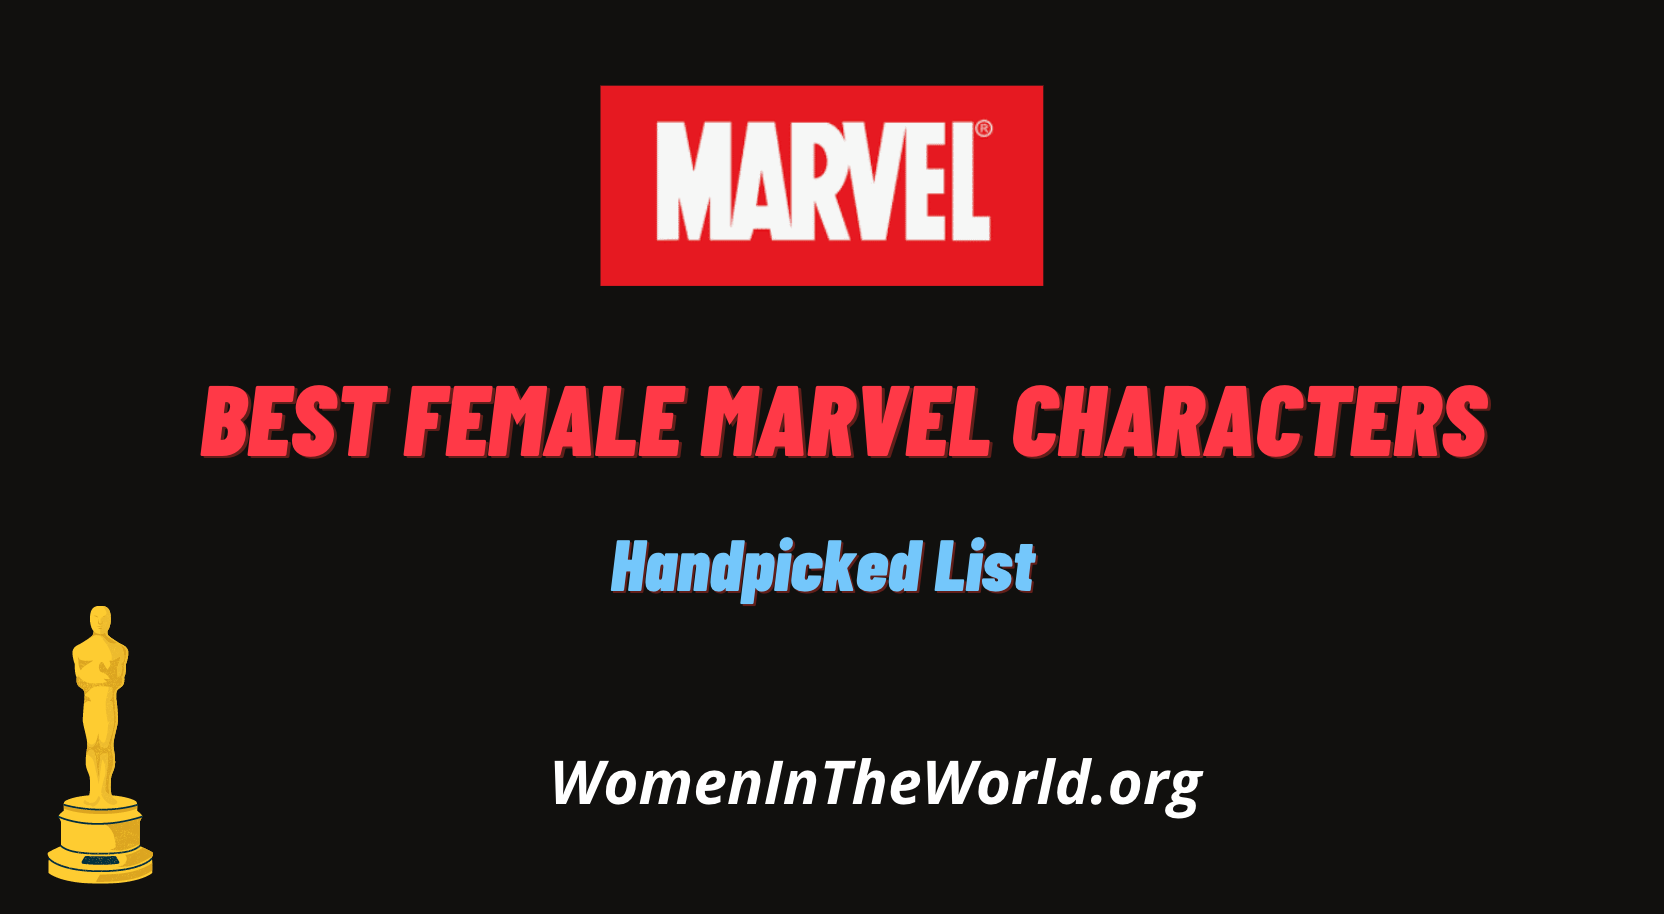 Best Female Marvel Characters